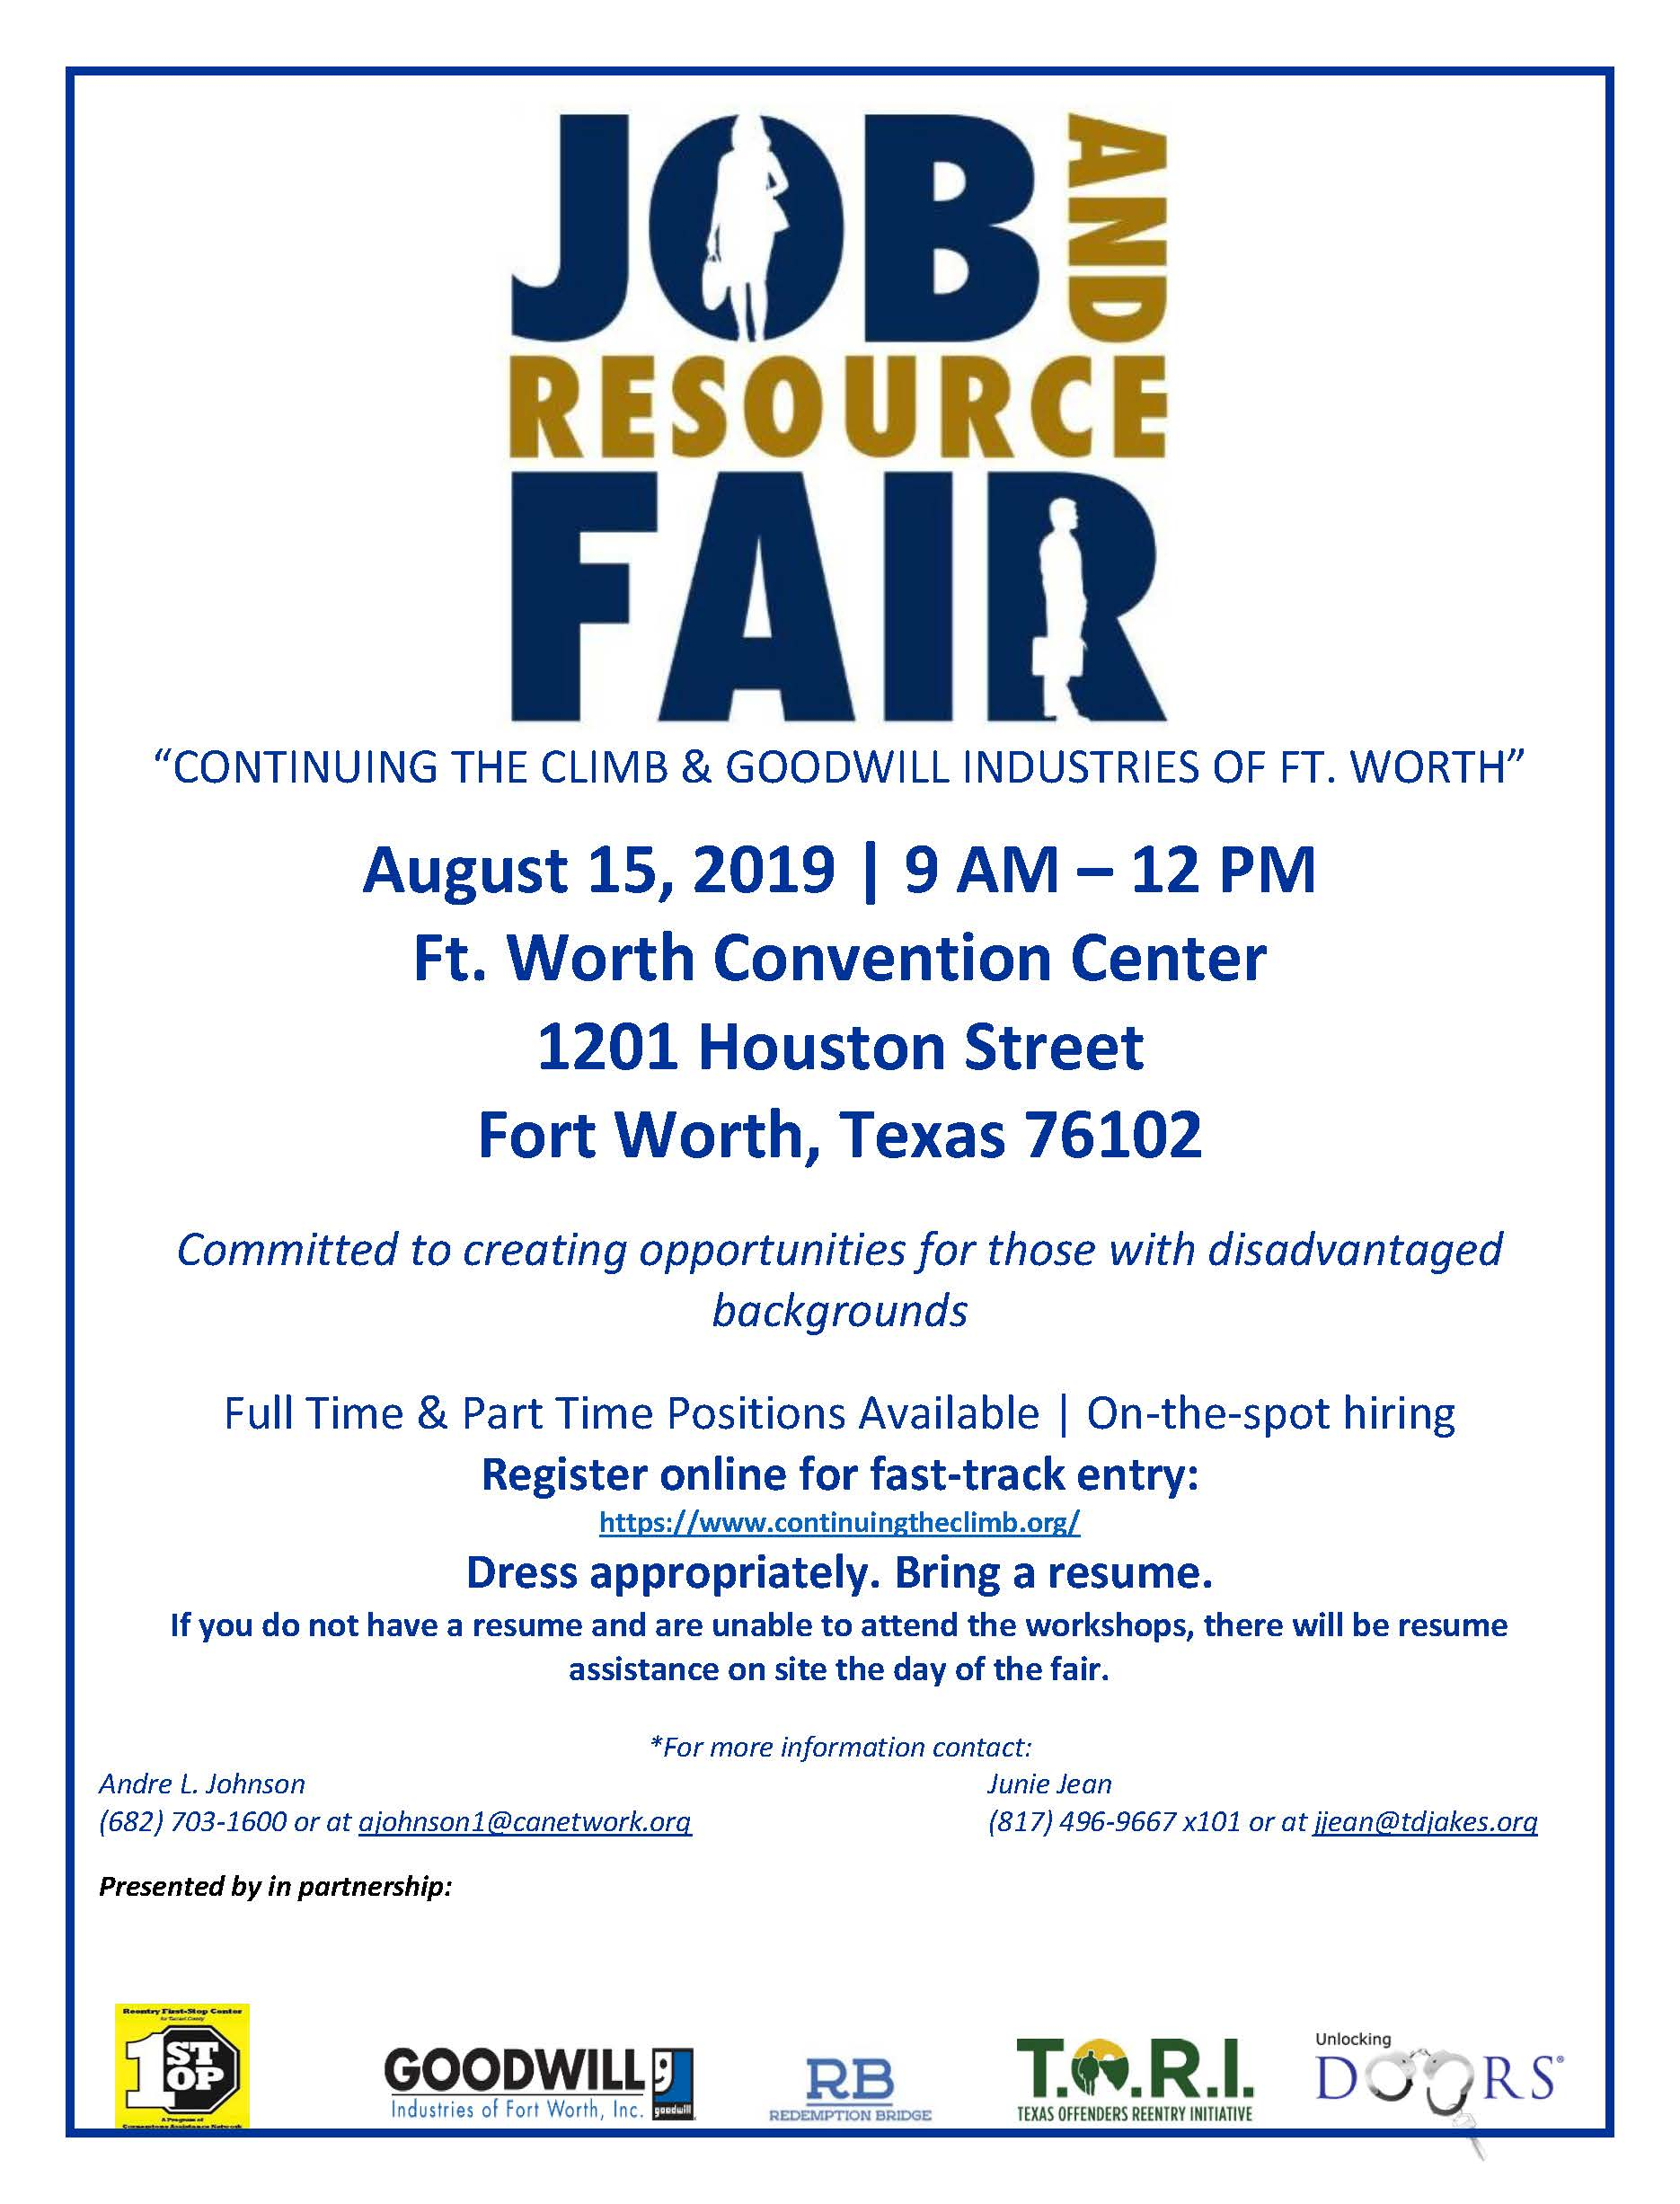 Job And Resource Fair Continuing The Climb Goodwill Fort Worth Goodwill Industries Fort Worth